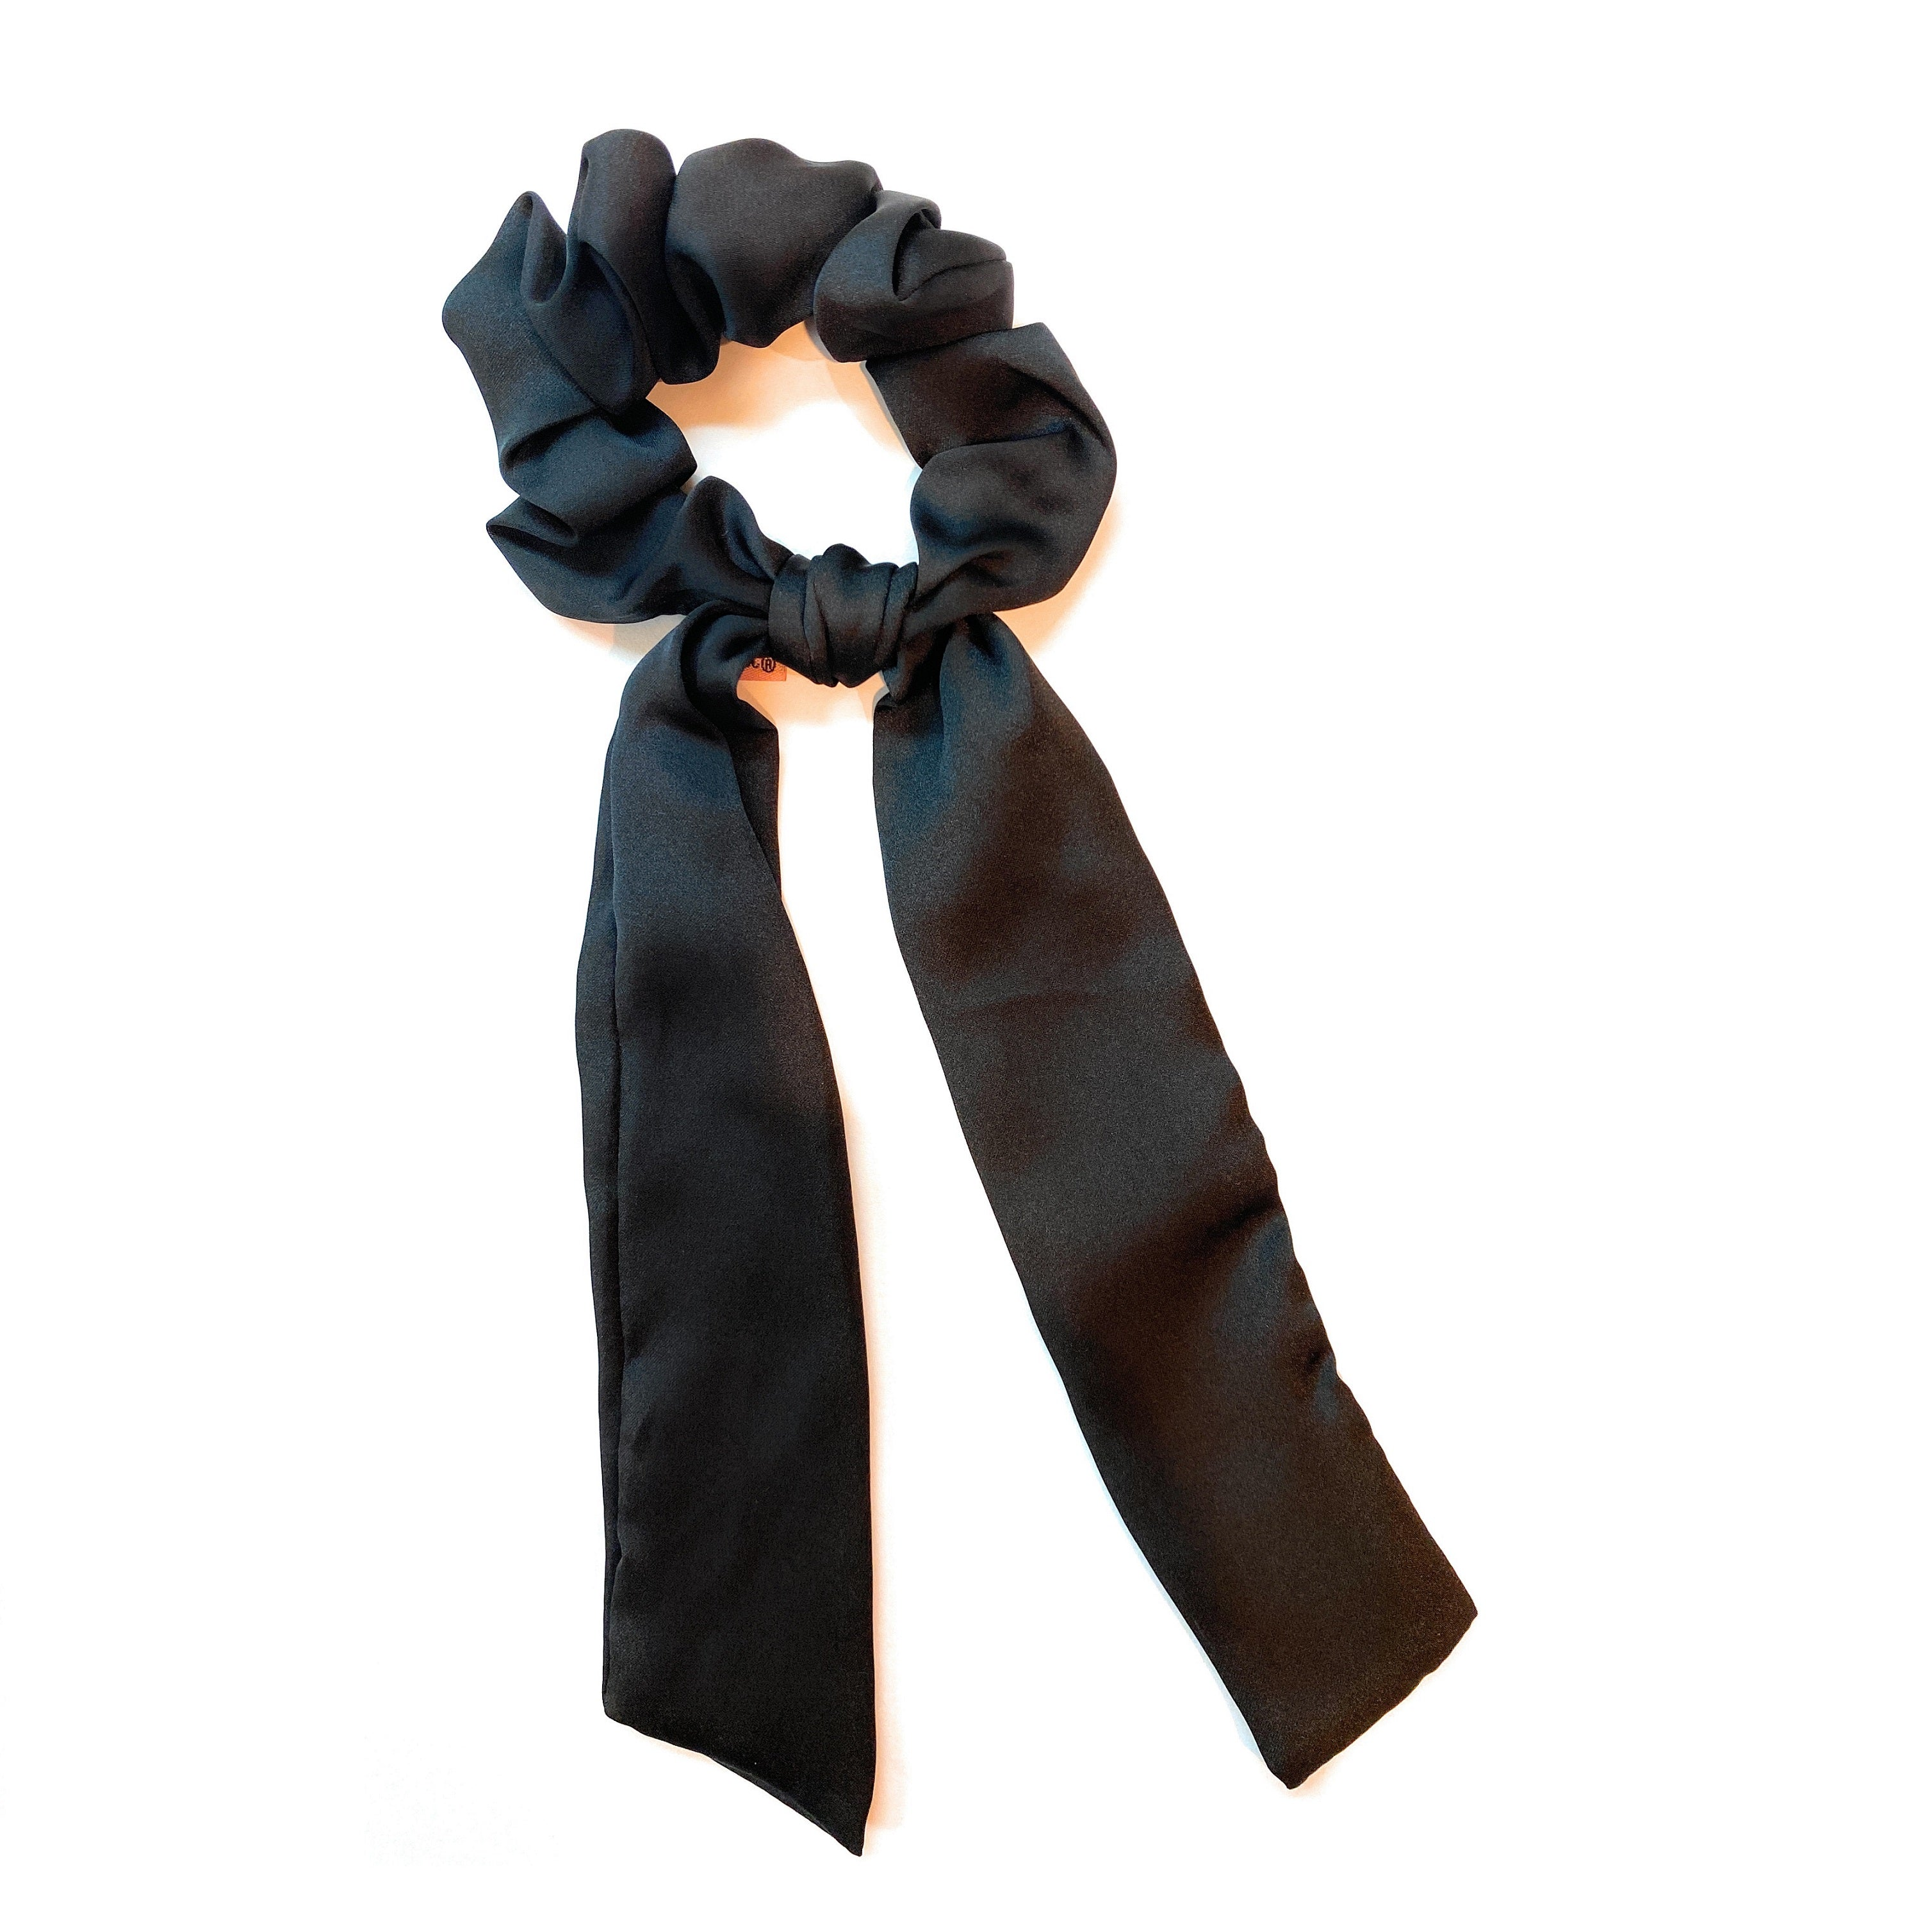 Mia Beauty Scrunchie with hanging ties black chiffon